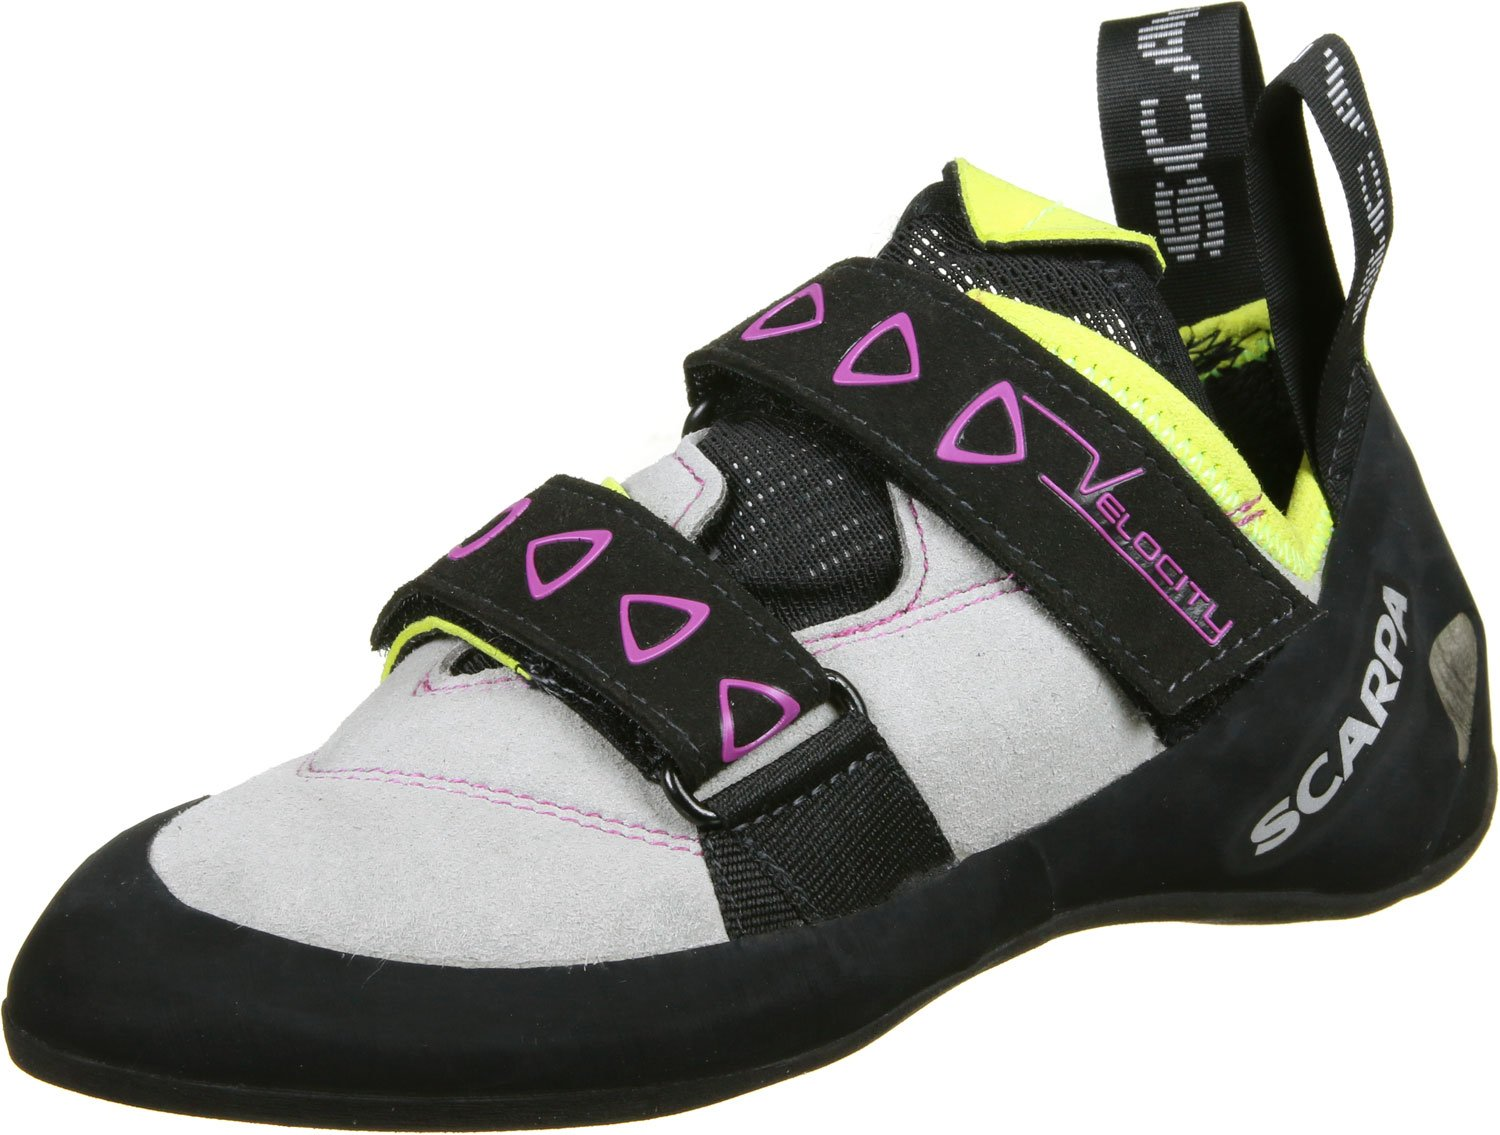 Scarpa lightGrau-yellow Schuhe Vapor V Damens lightGrau-yellow Scarpa aedea5